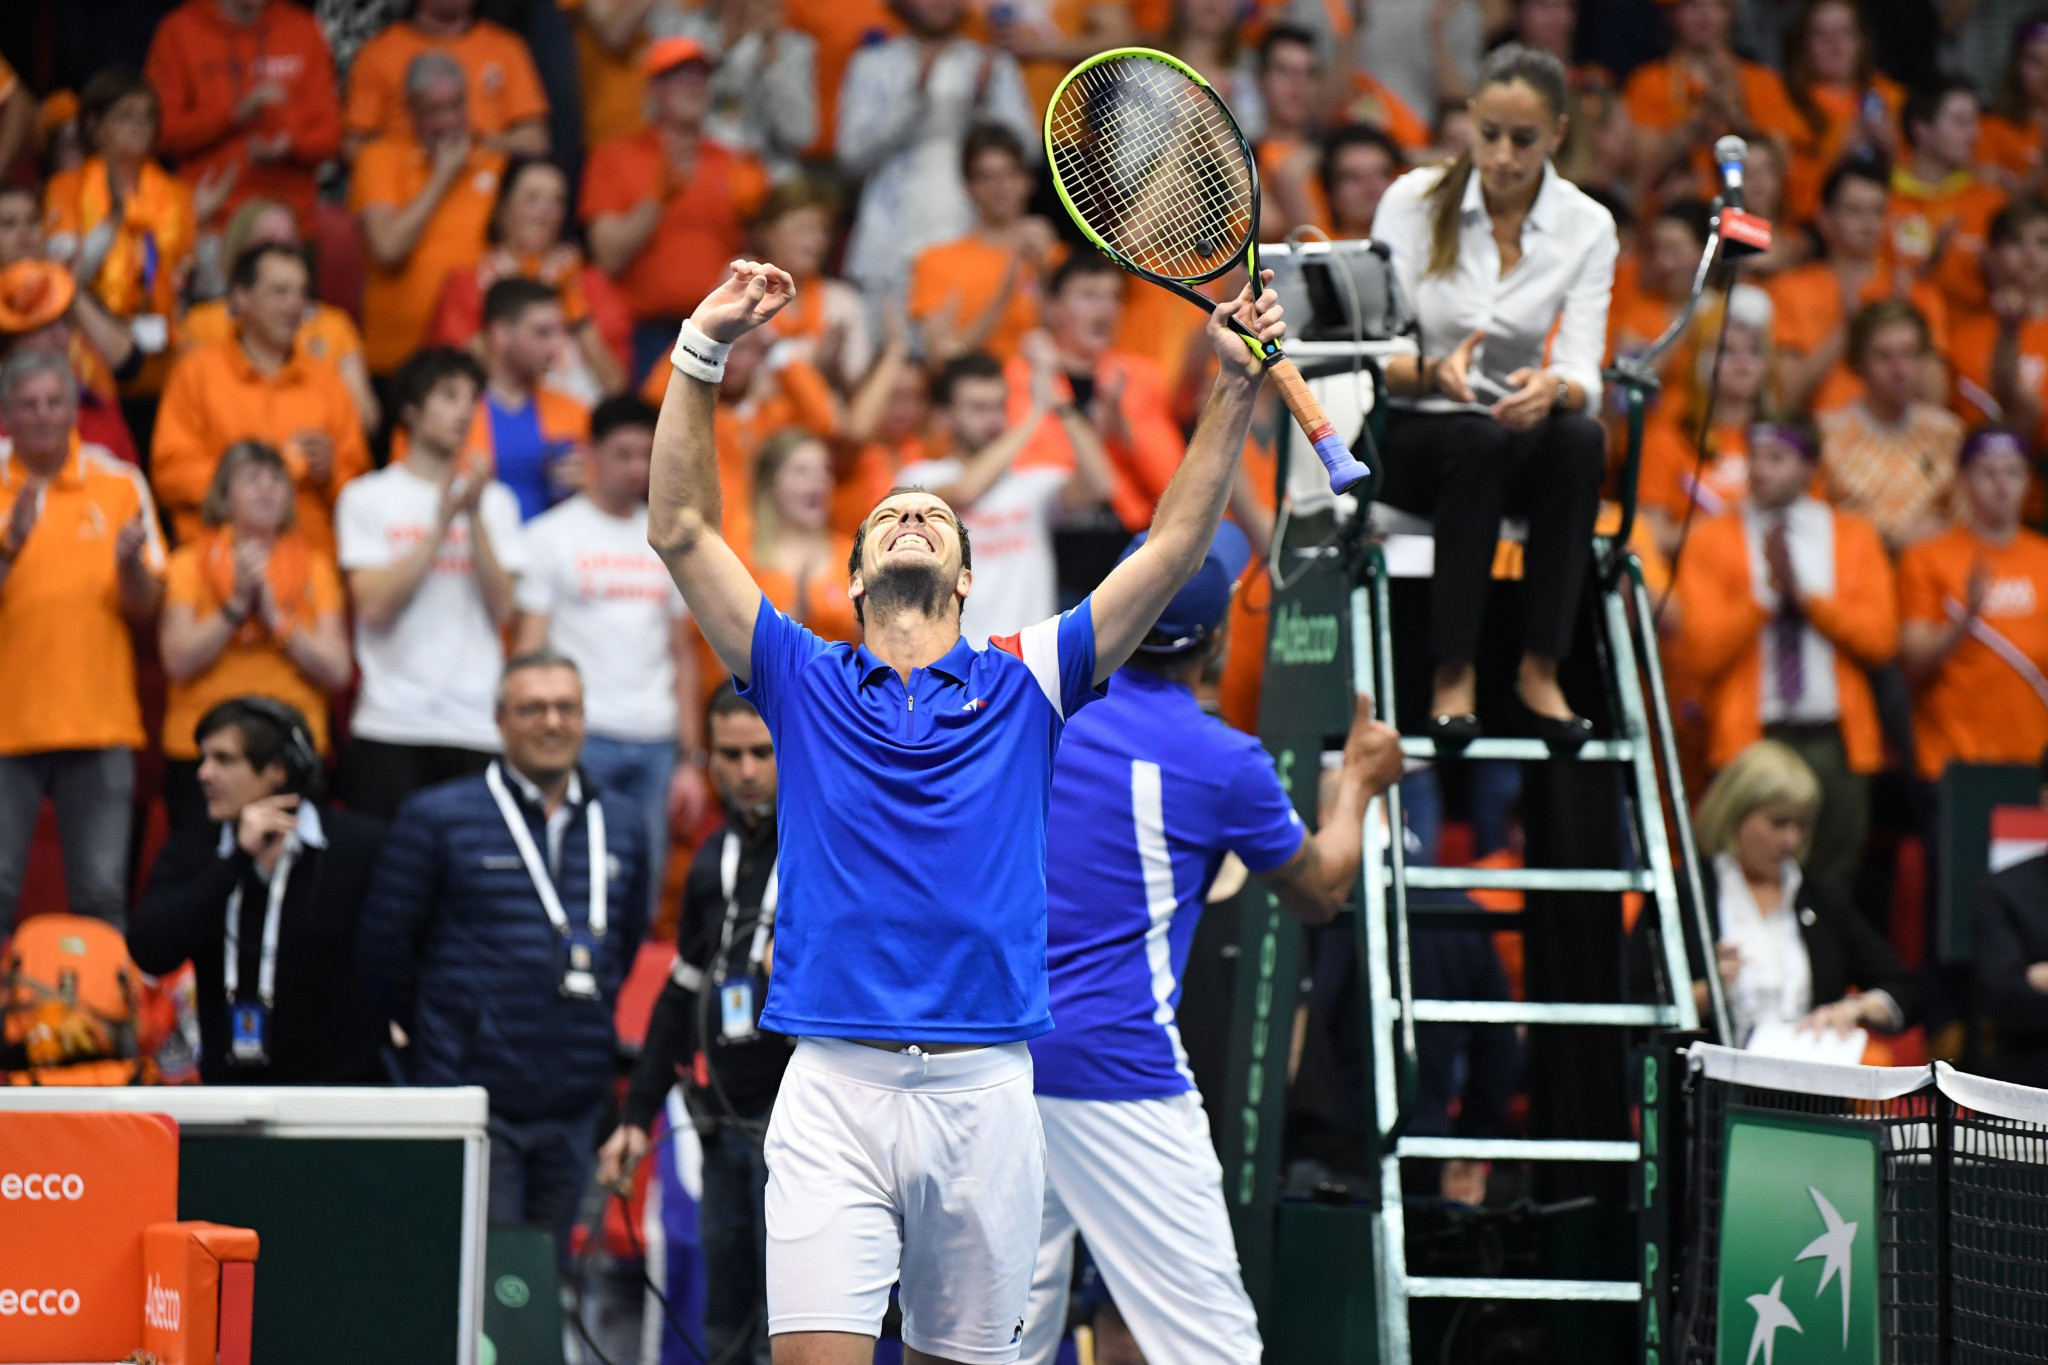 Defending champions France level with Netherlands after first day of Davis Cup World Group tie